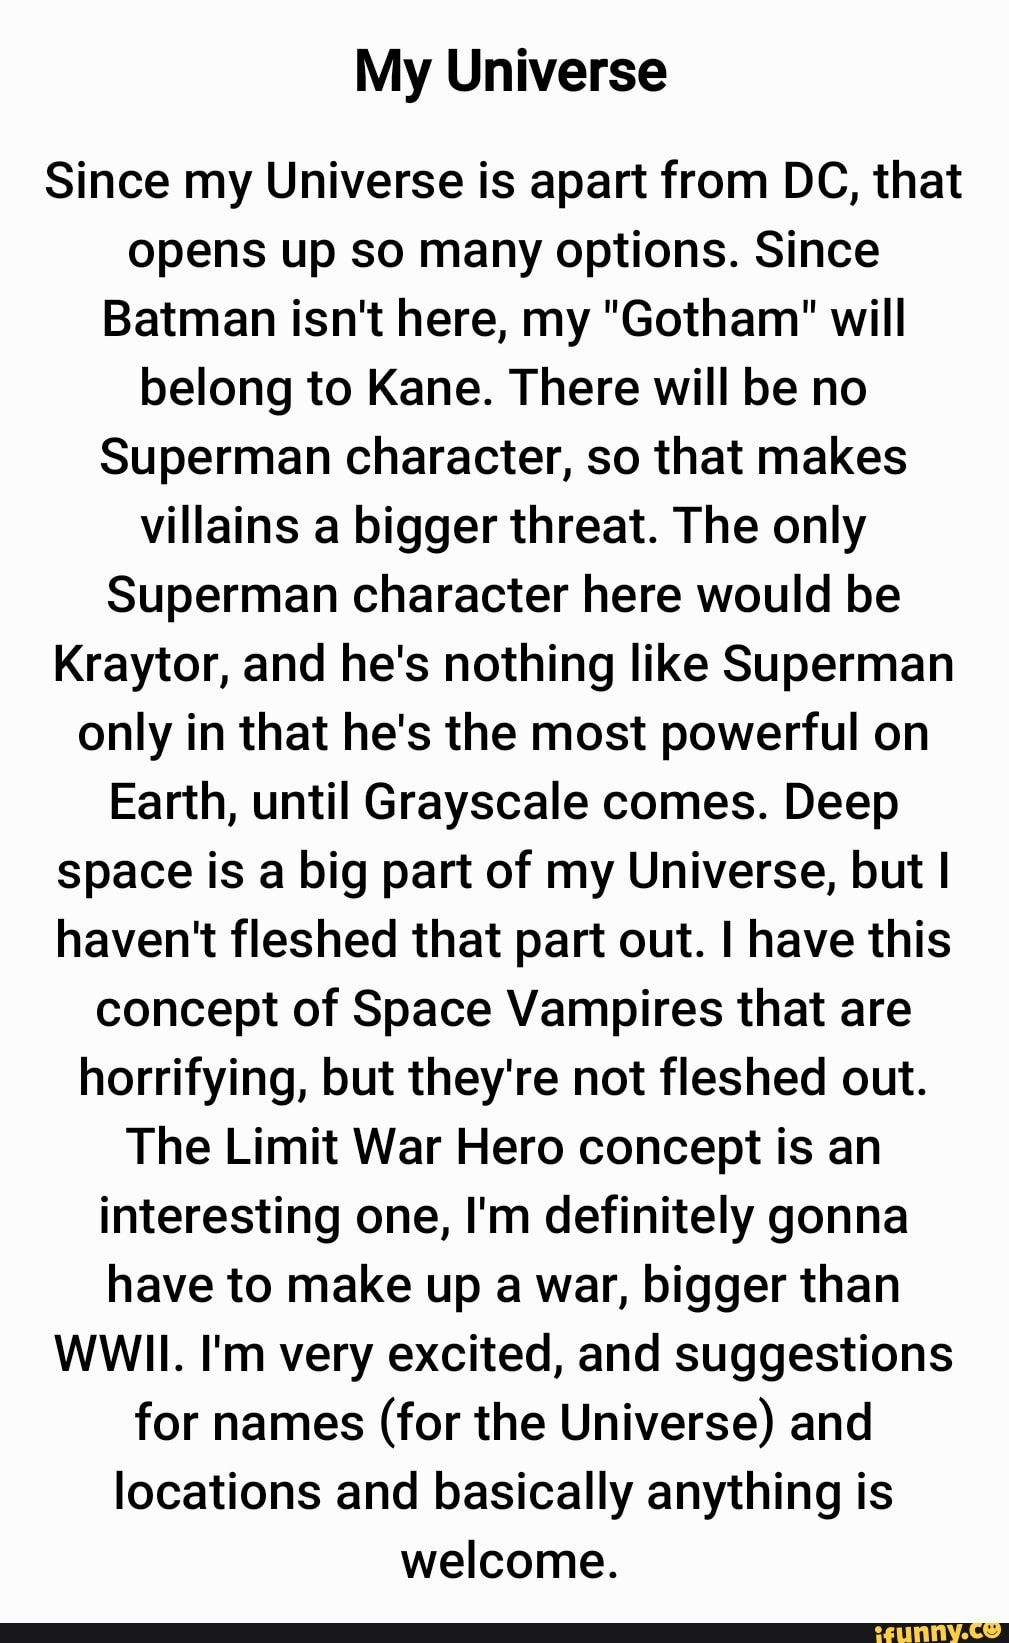 Picture memes L7bJe0Lx6 — iFunny My Universe Since my Universe is apart from DC, that opens up so many options. Since Batman isn't here, my